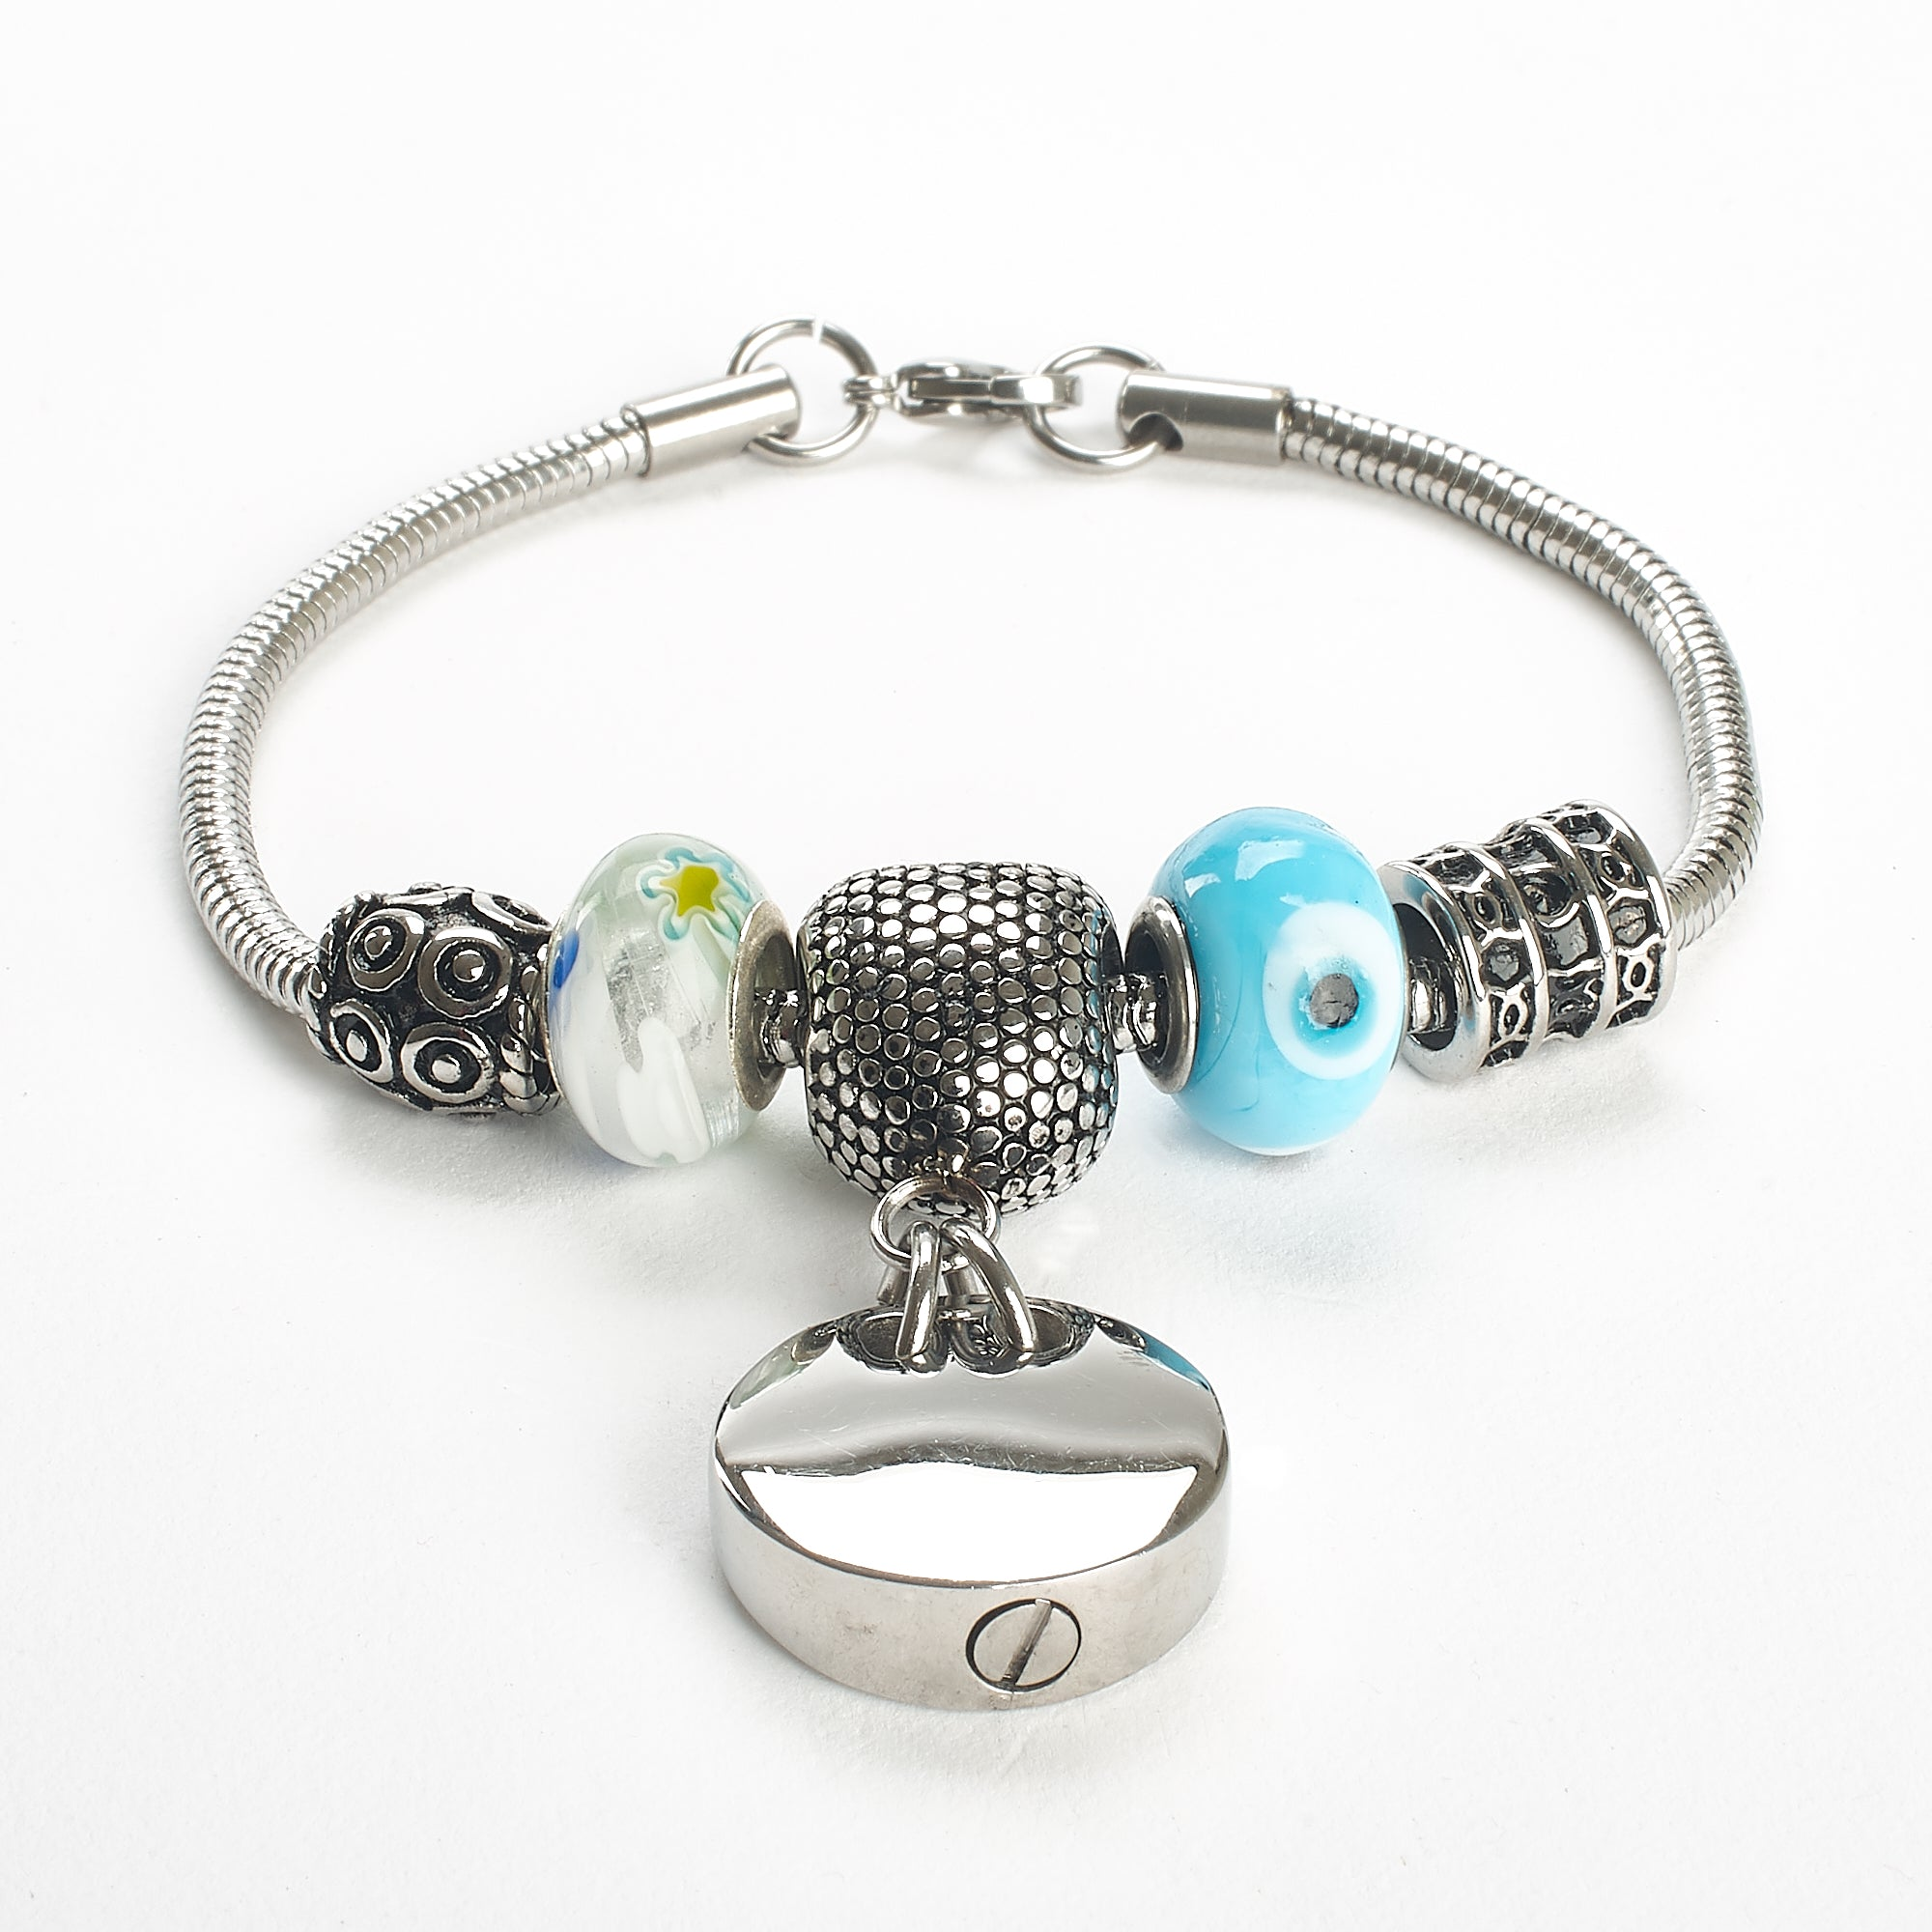 Cremation Bracelet - Silver and Stone Charms